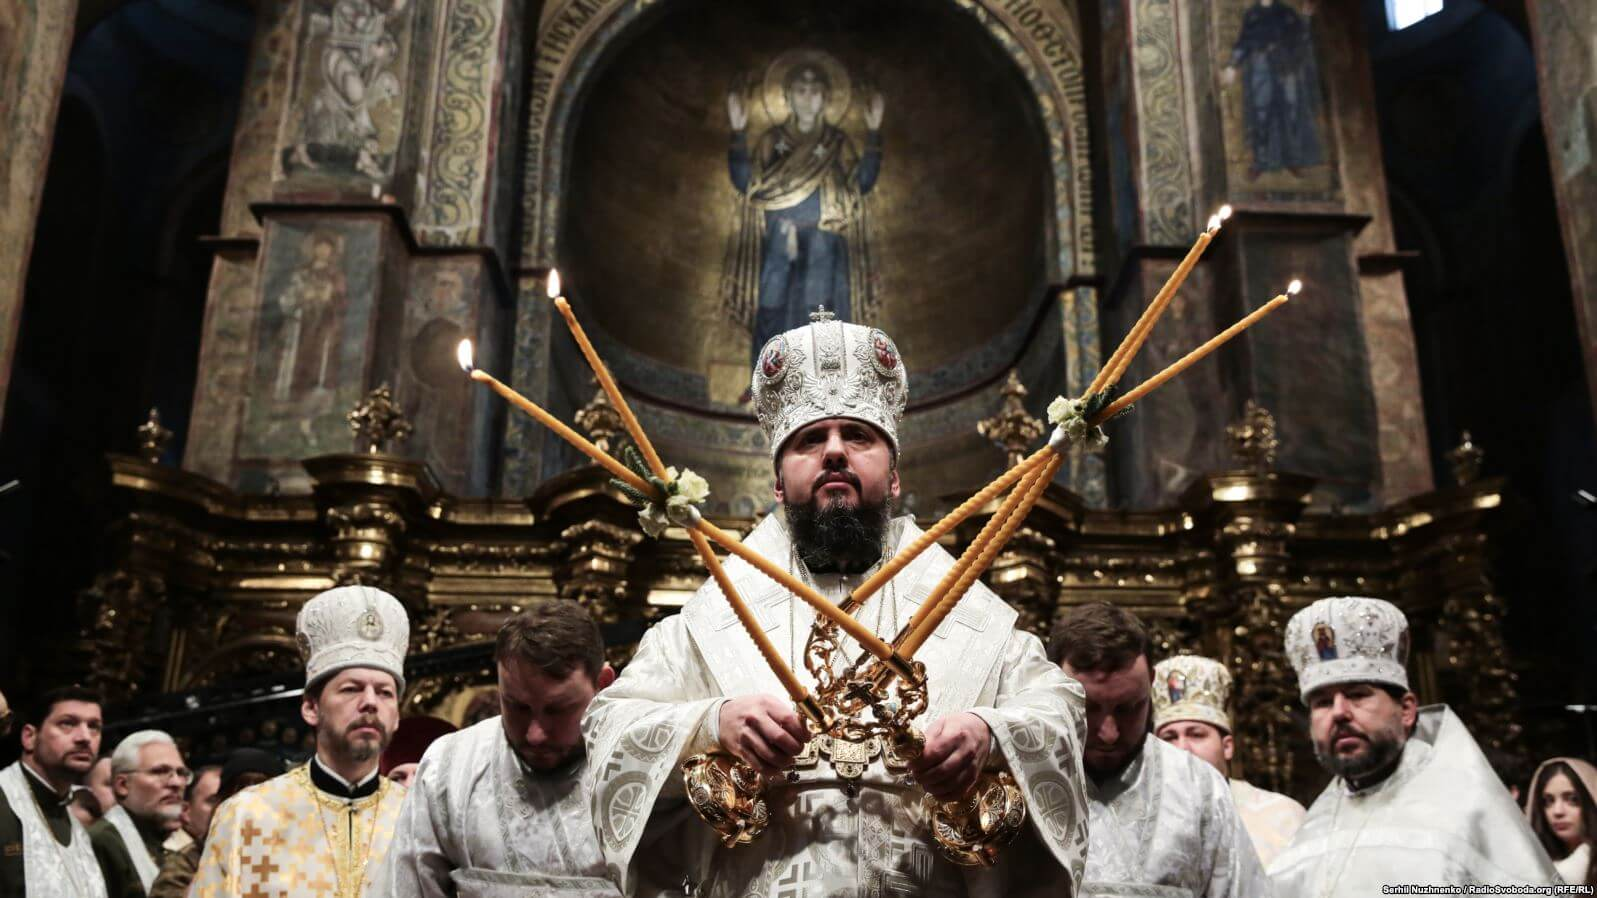 Ukraine's Autocephaly as a Source of Conciliation and Confrontation in the Orthodox World